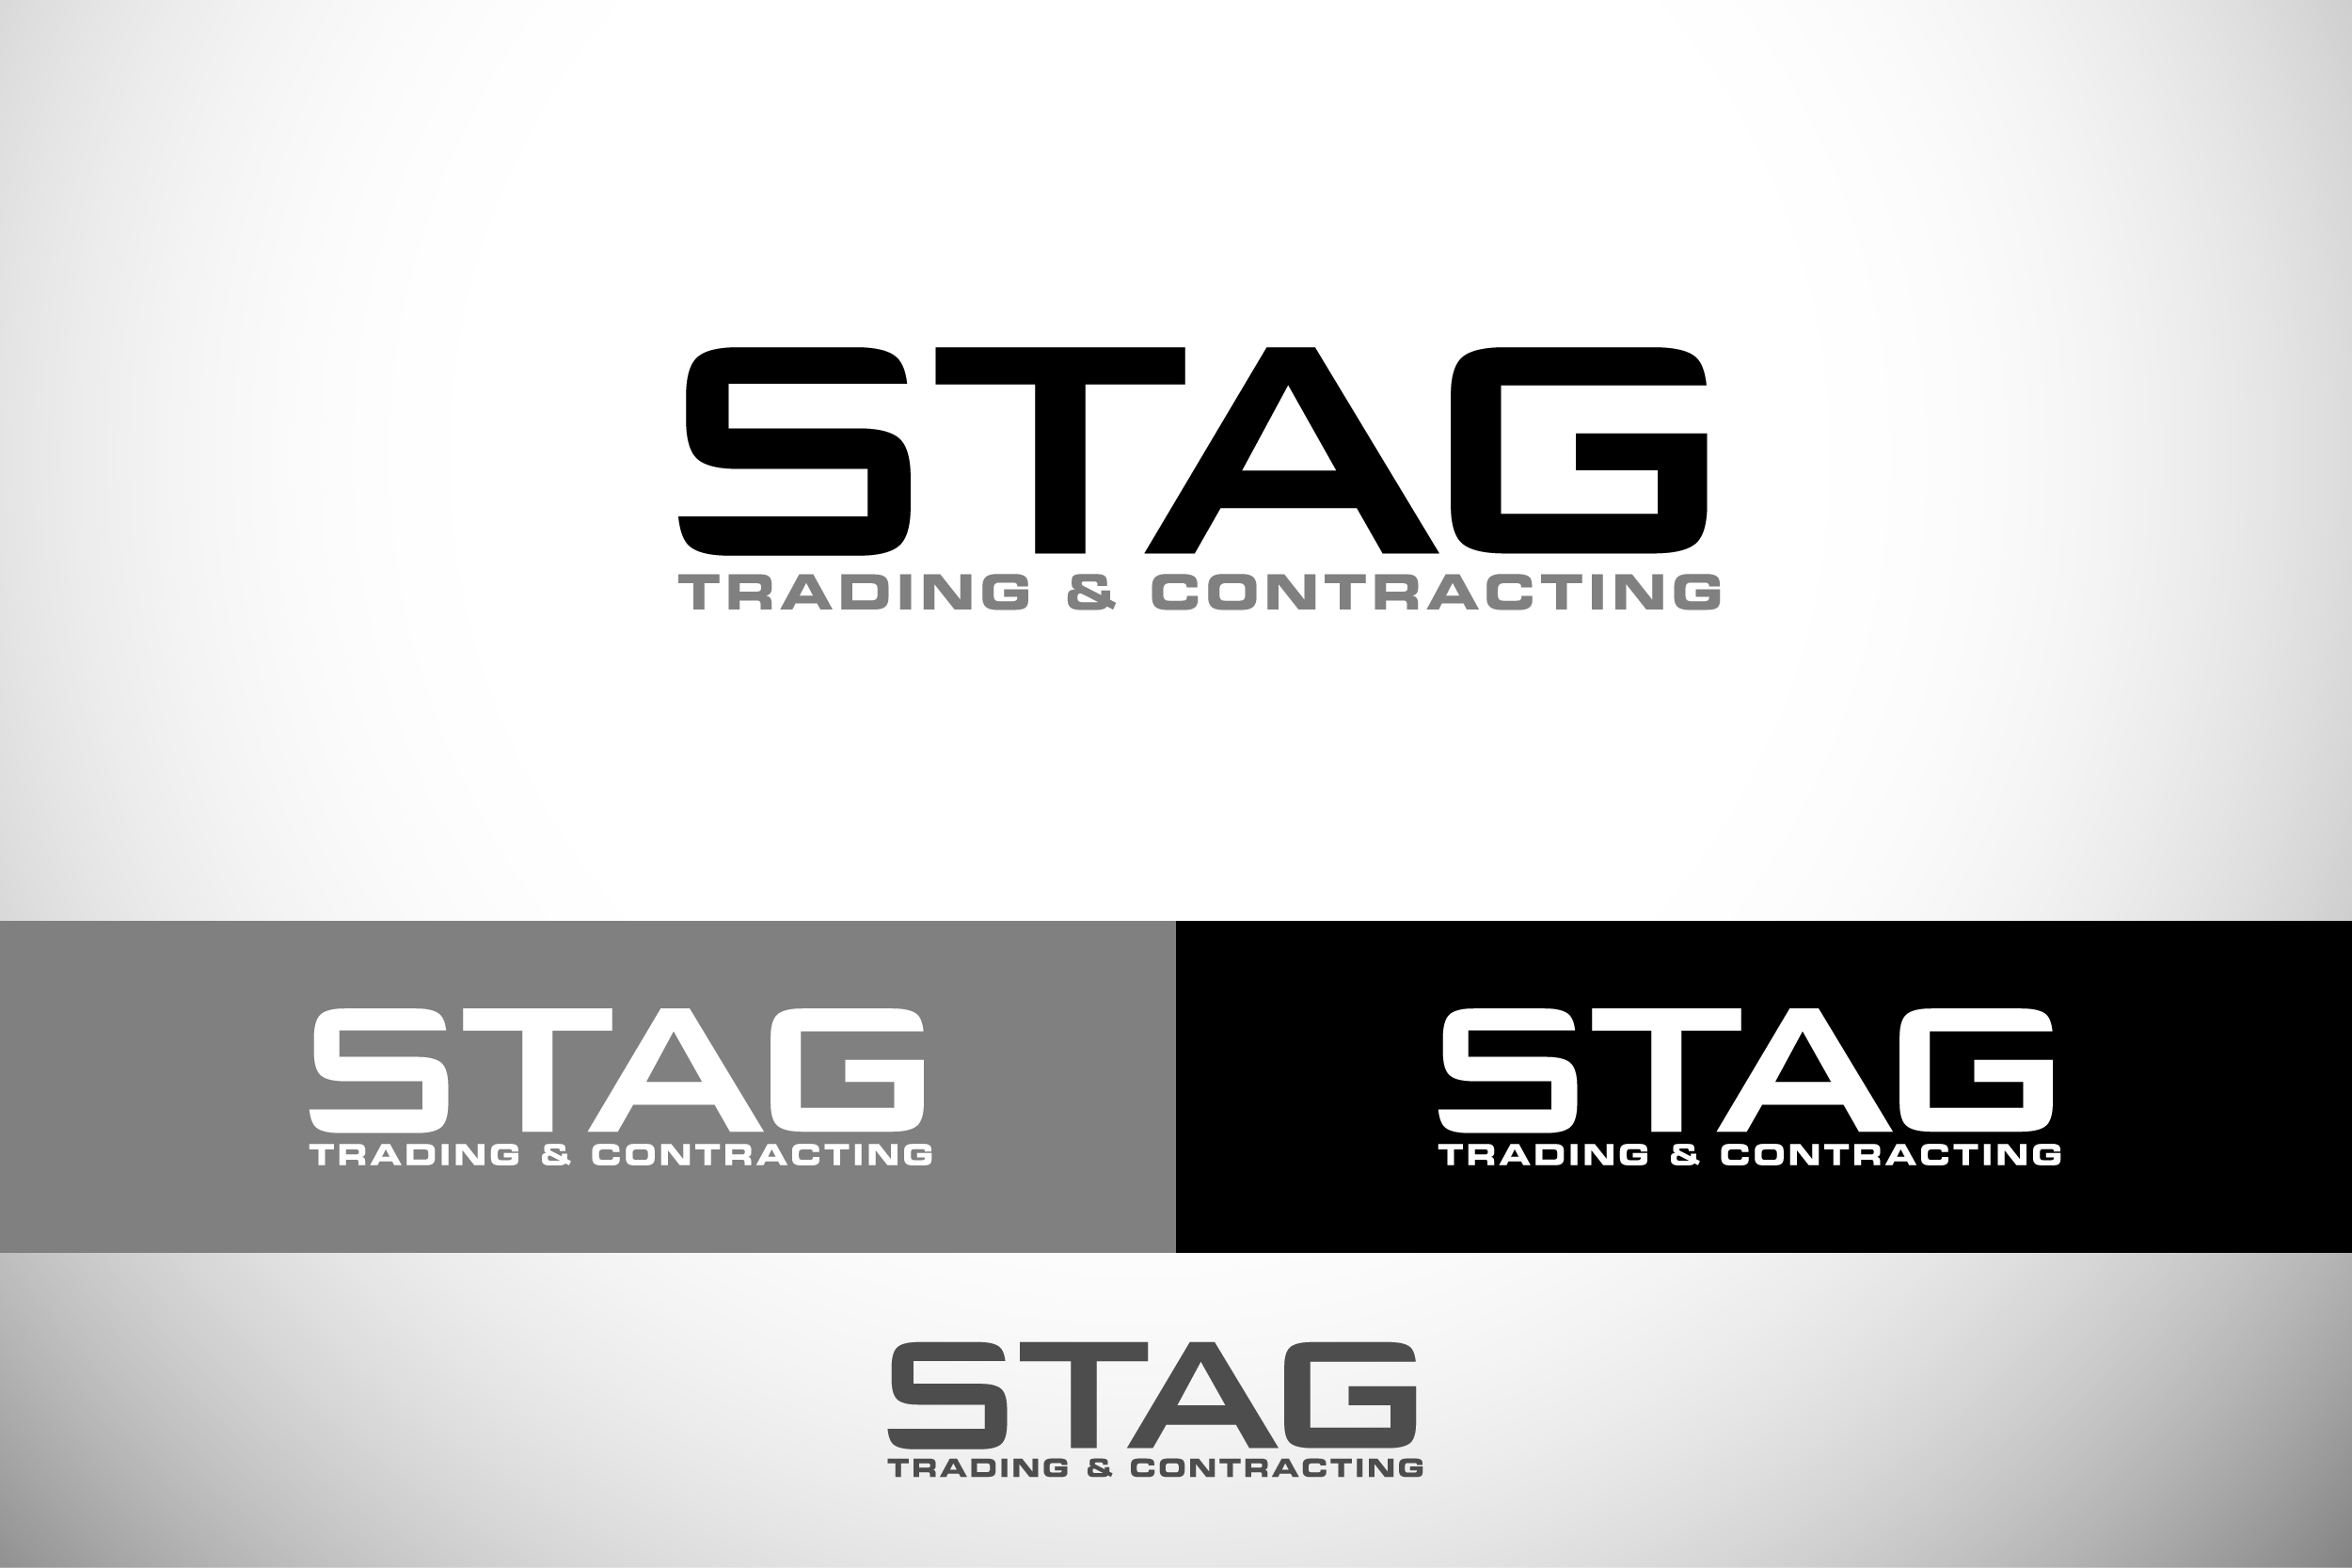 Logo Design by Private User - Entry No. 254 in the Logo Design Contest Captivating Logo Design for STAG Trading & Contracting.